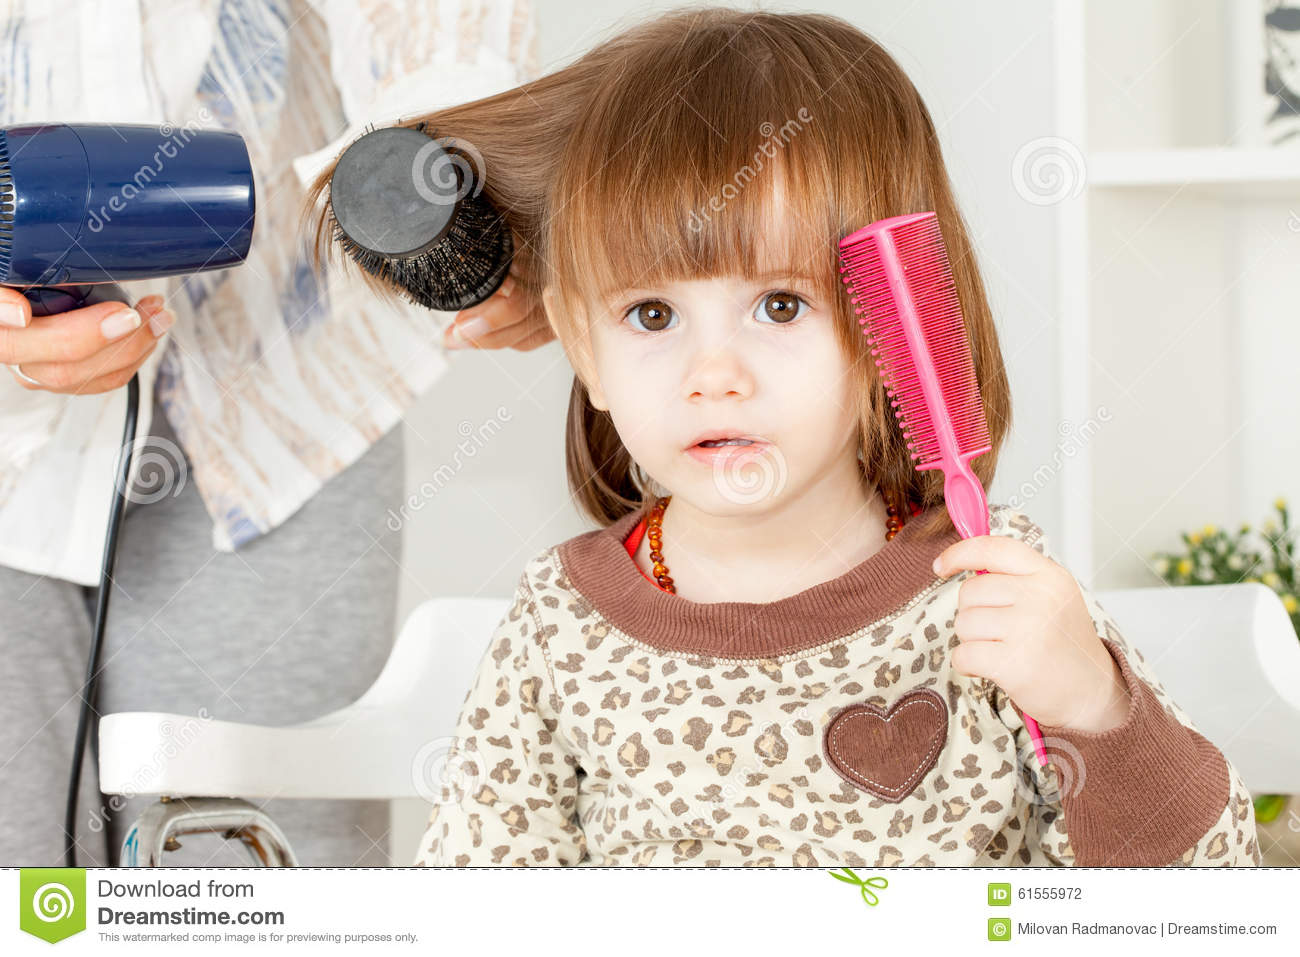 Hair Style Girl Image: Cute Little Girl Hair Style Stock Photo